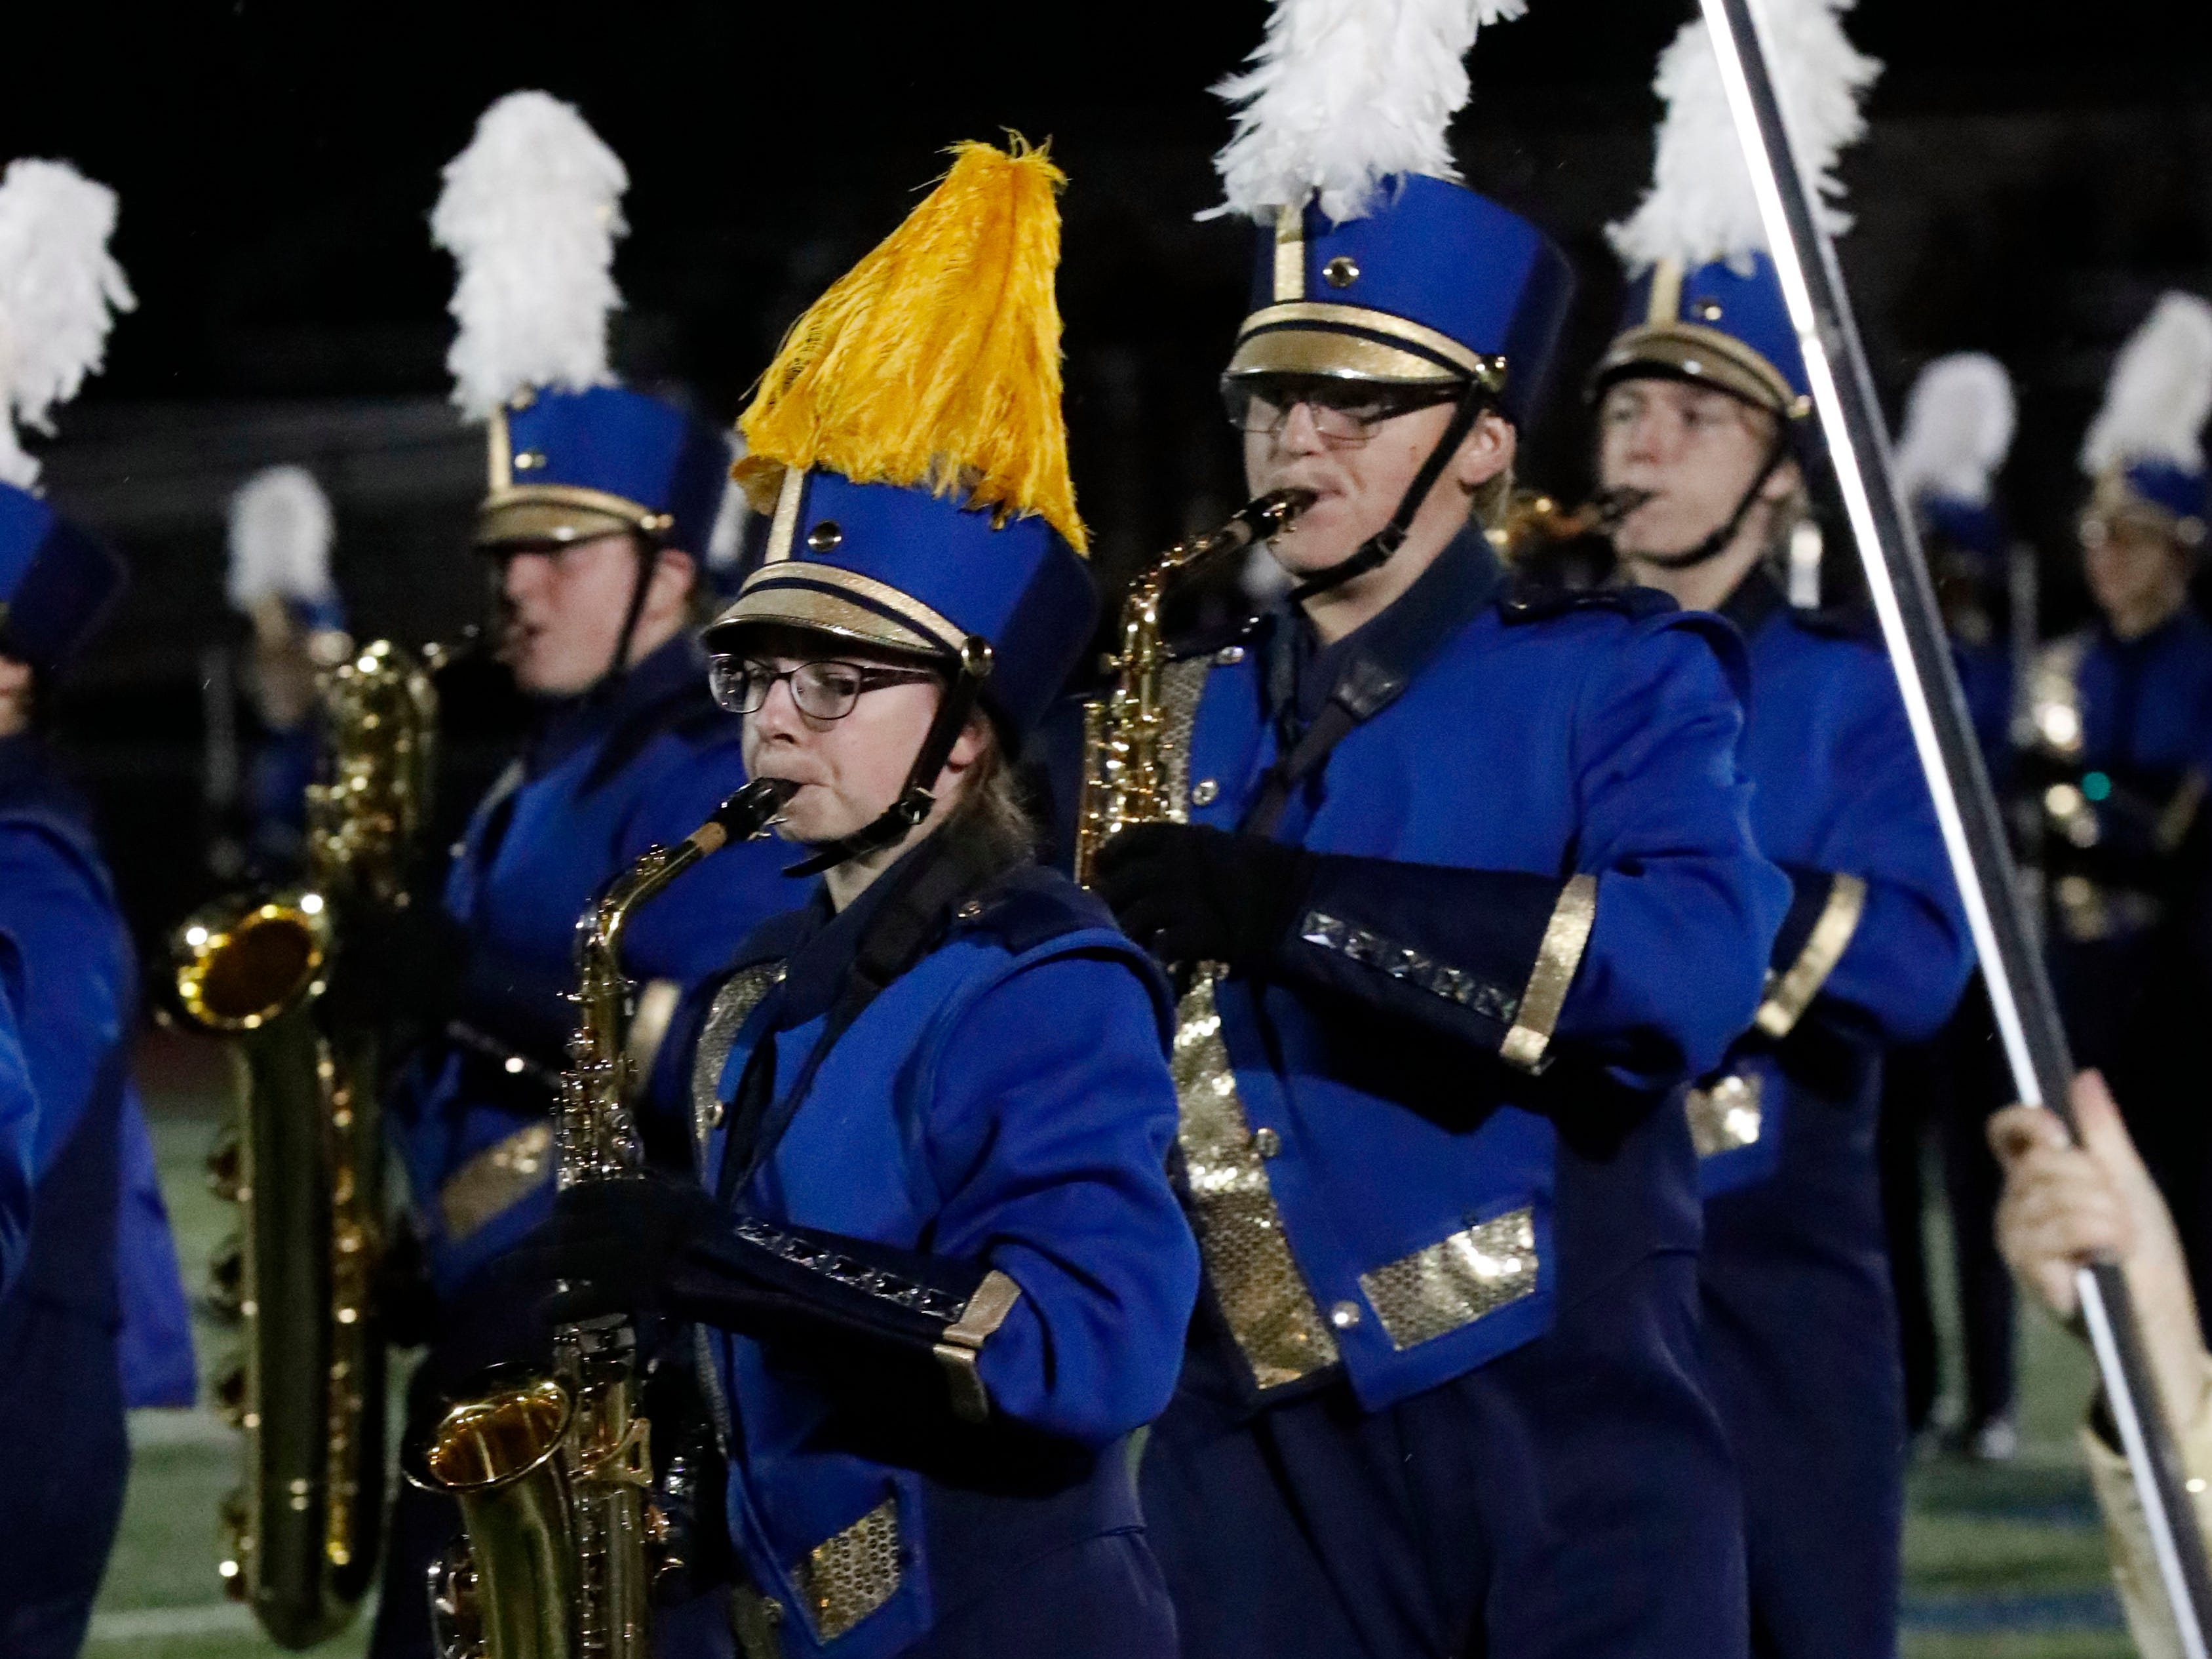 The Lancaster Band of Gold performed during halftime of Friday night's football game, Oct. 12, 2018, at Fulton Field in Lancaster.